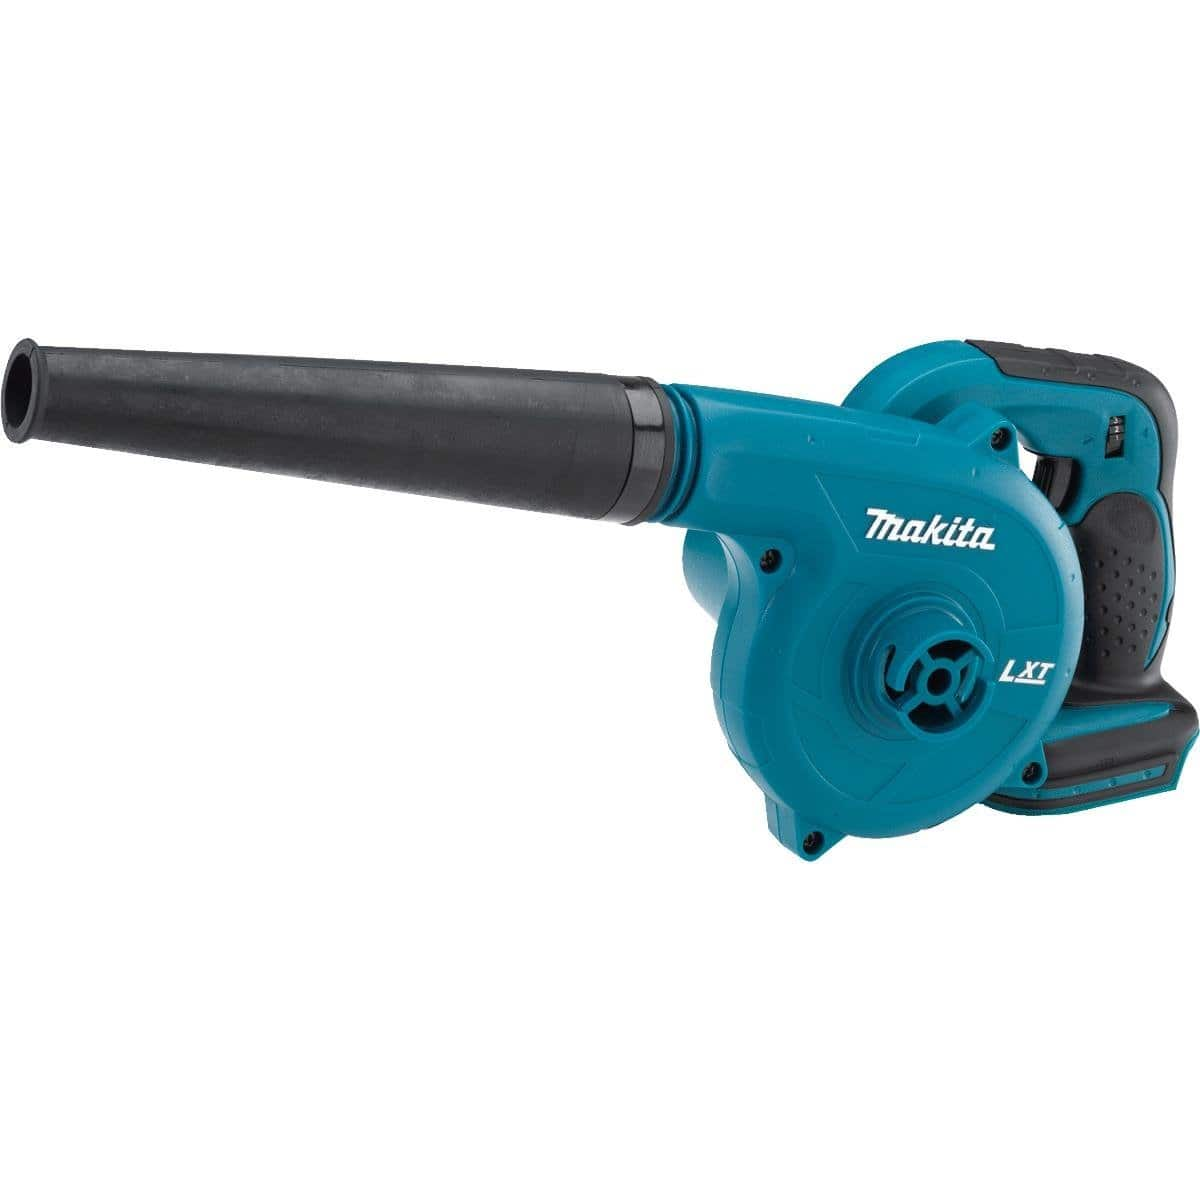 Makita DUB182Z 18V LXT Lithium-Ion Cordless Blower, Tool Only [Short nozzle] $59